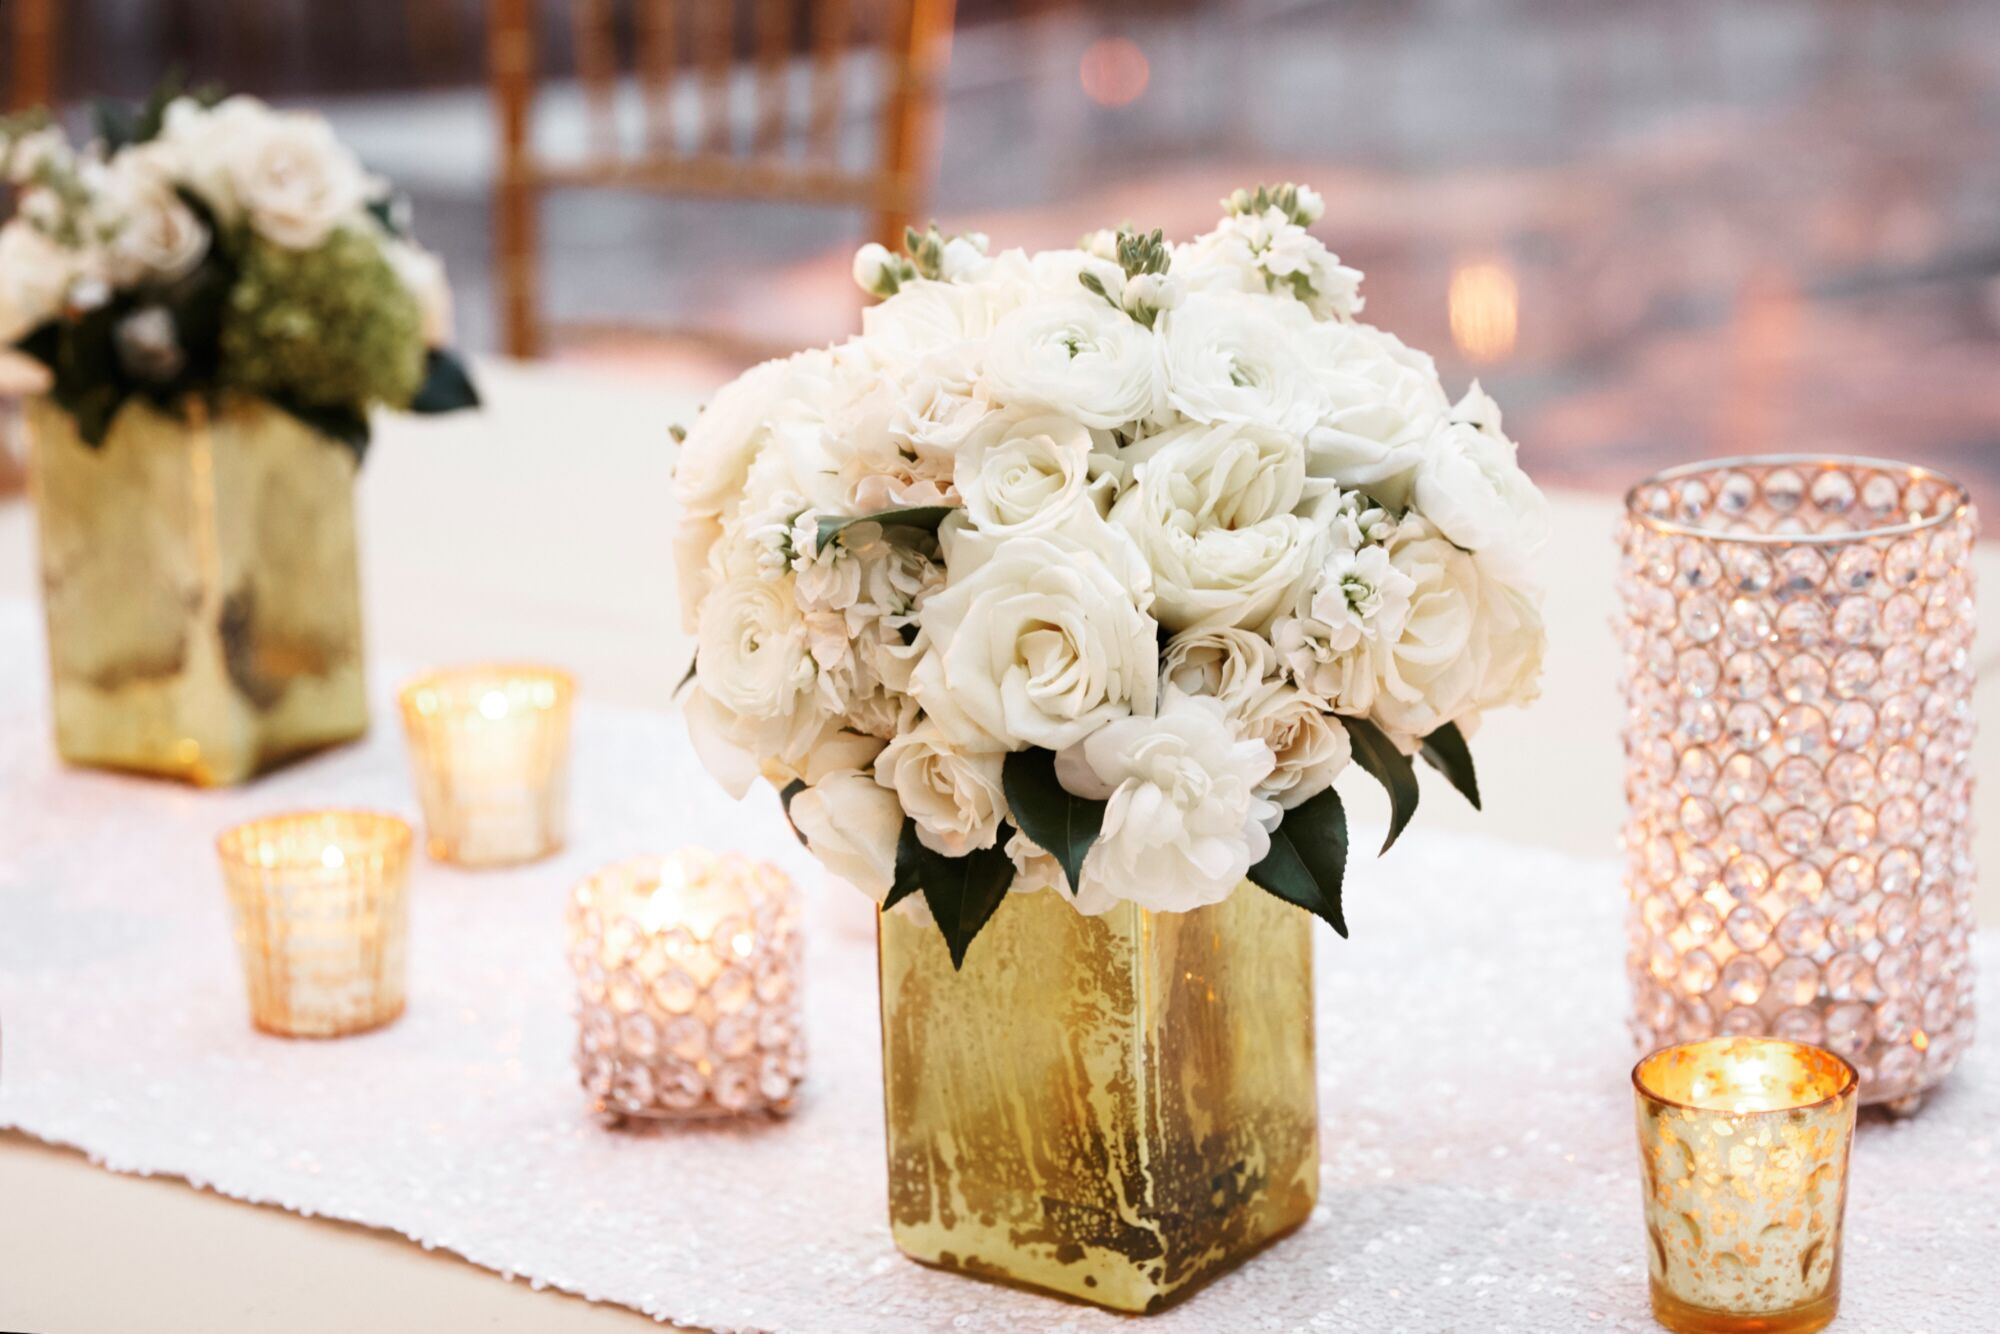 Ivory Flower Arrangement In Gold Vase